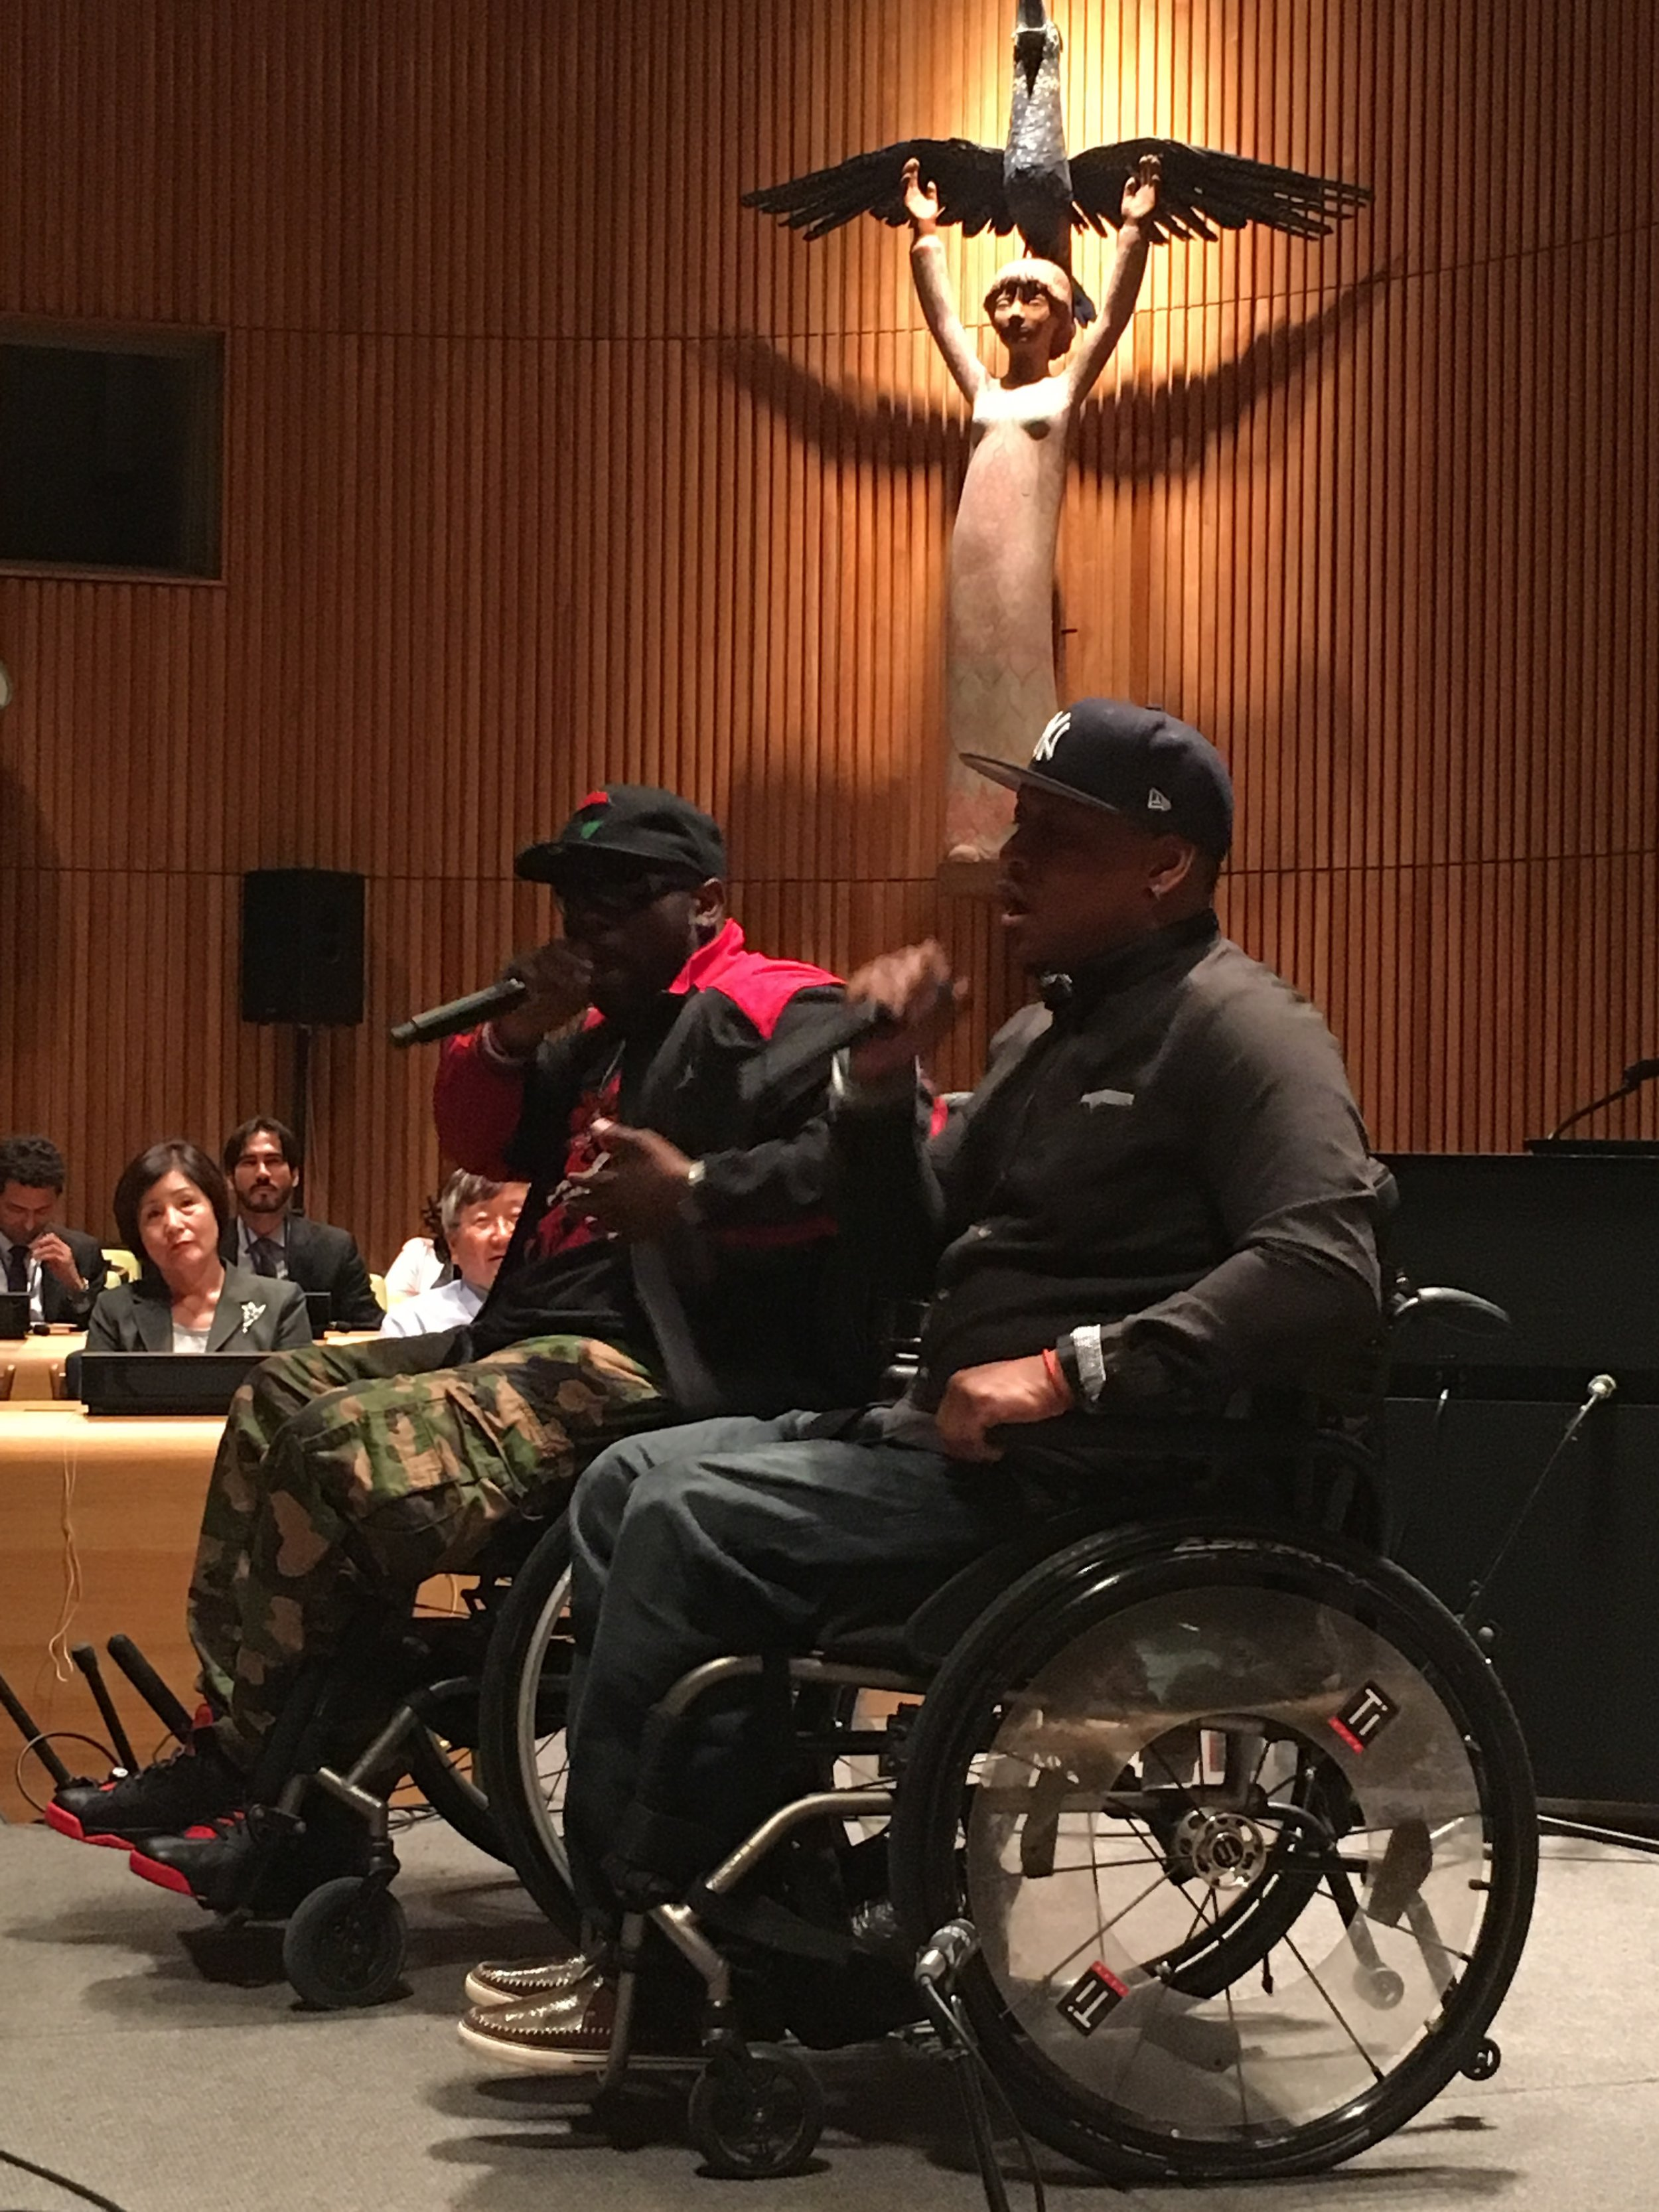 4 Wheel City perform at the United Nations. Photograph: Adrian Brune